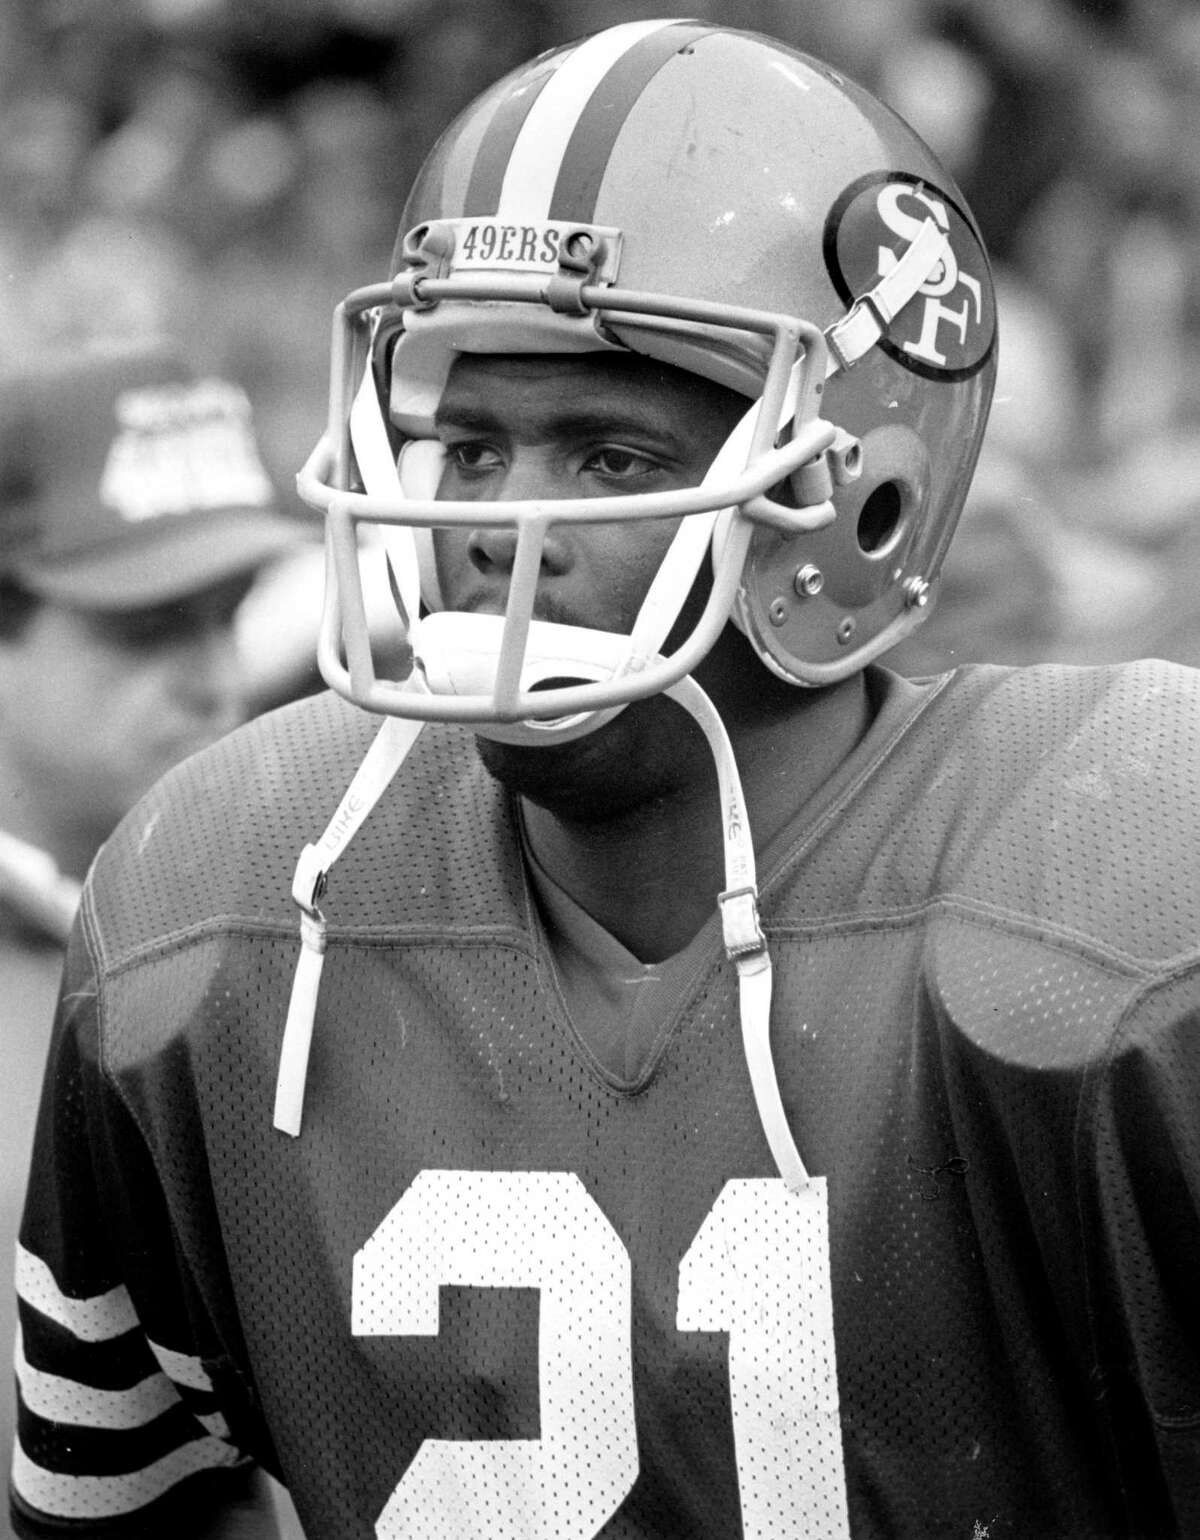 San Francisco 49ers cornerback Eric Wright had the first interception of his career in a 21-14 defeat of the Saints in Week 4 of the 1981 season.